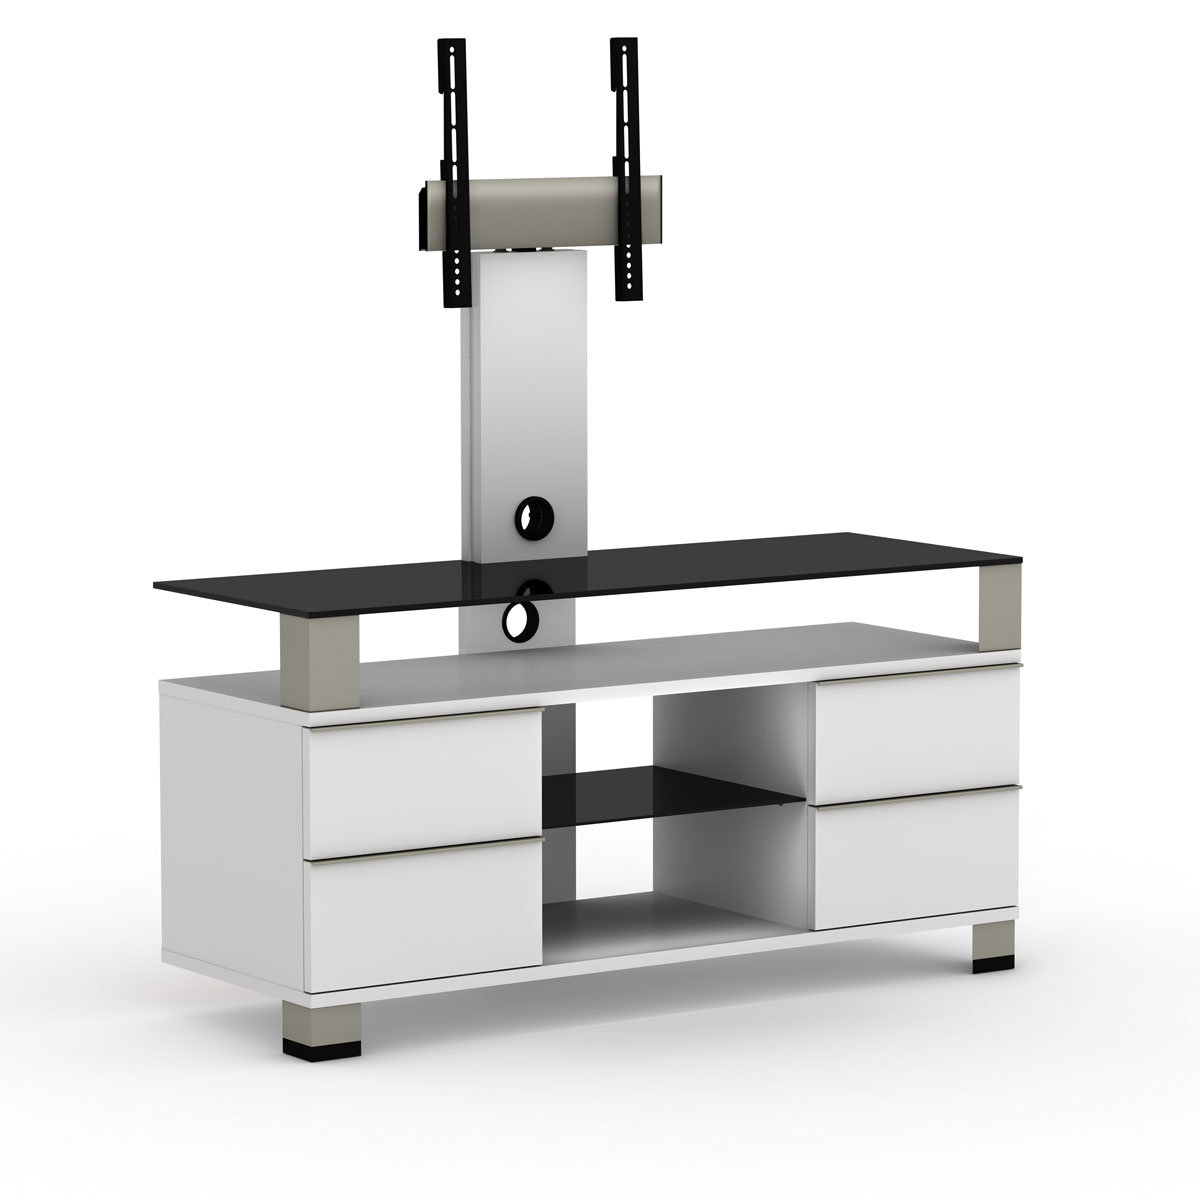 Meuble Tv Avec Support Ecran Orientable - Meuble Tv Avec Support Meuble D Angle Tv Blanc Maisonjoffrois[mjhdah]https://media.ldlc.com/ld/products/00/01/04/19/LD0001041928_2.jpg